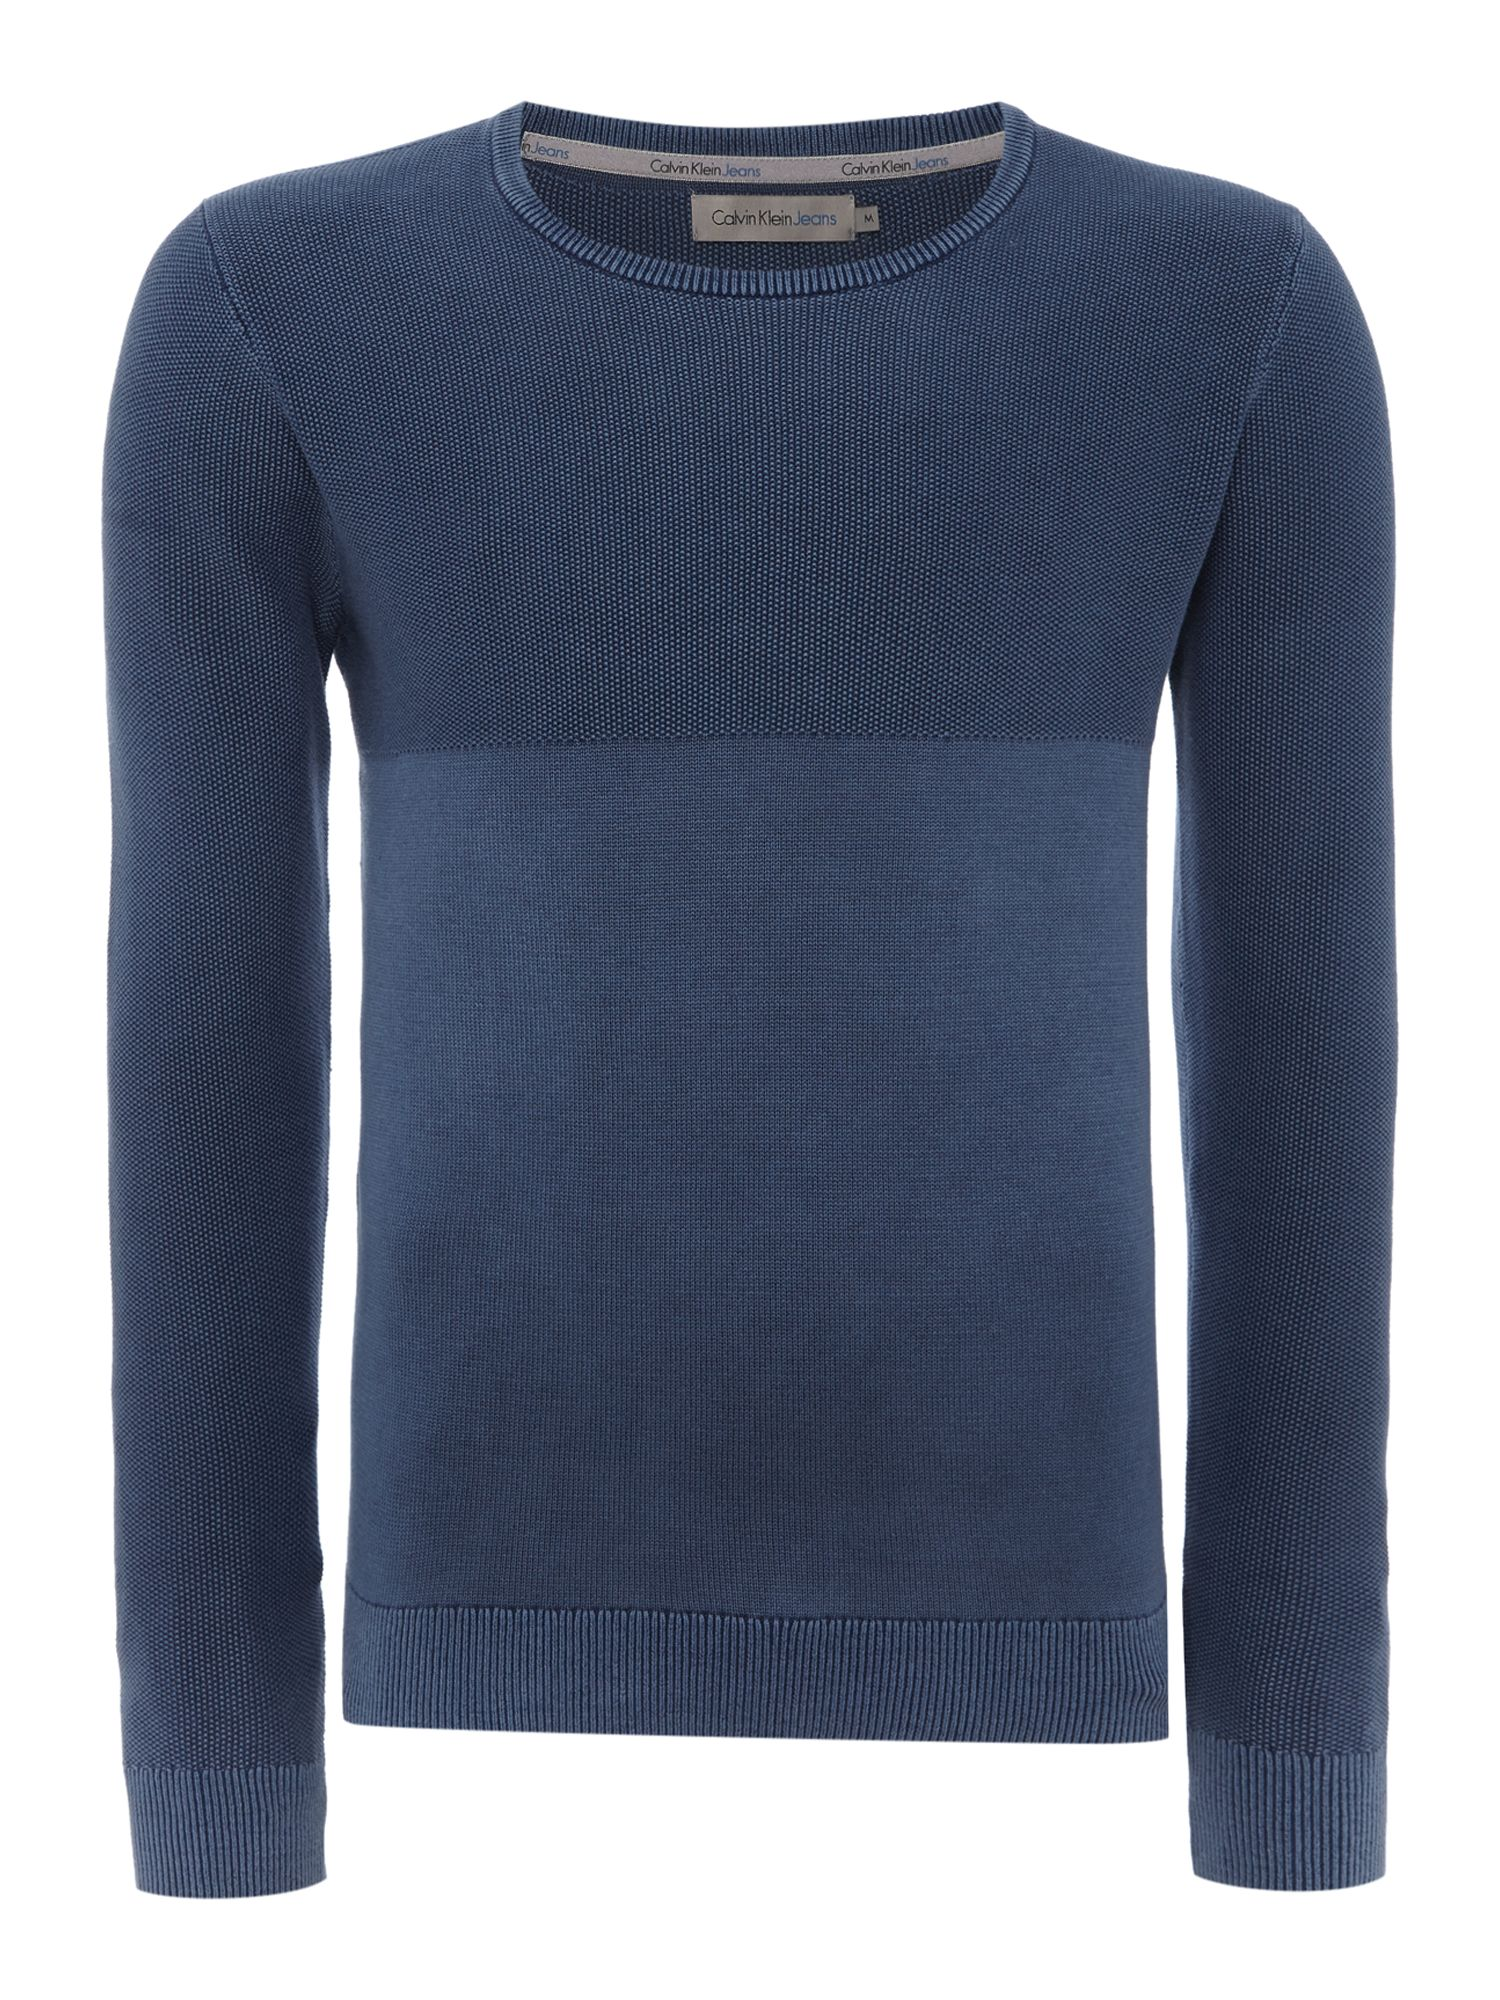 Men's Calvin Klein Sabot Sweater, Blue